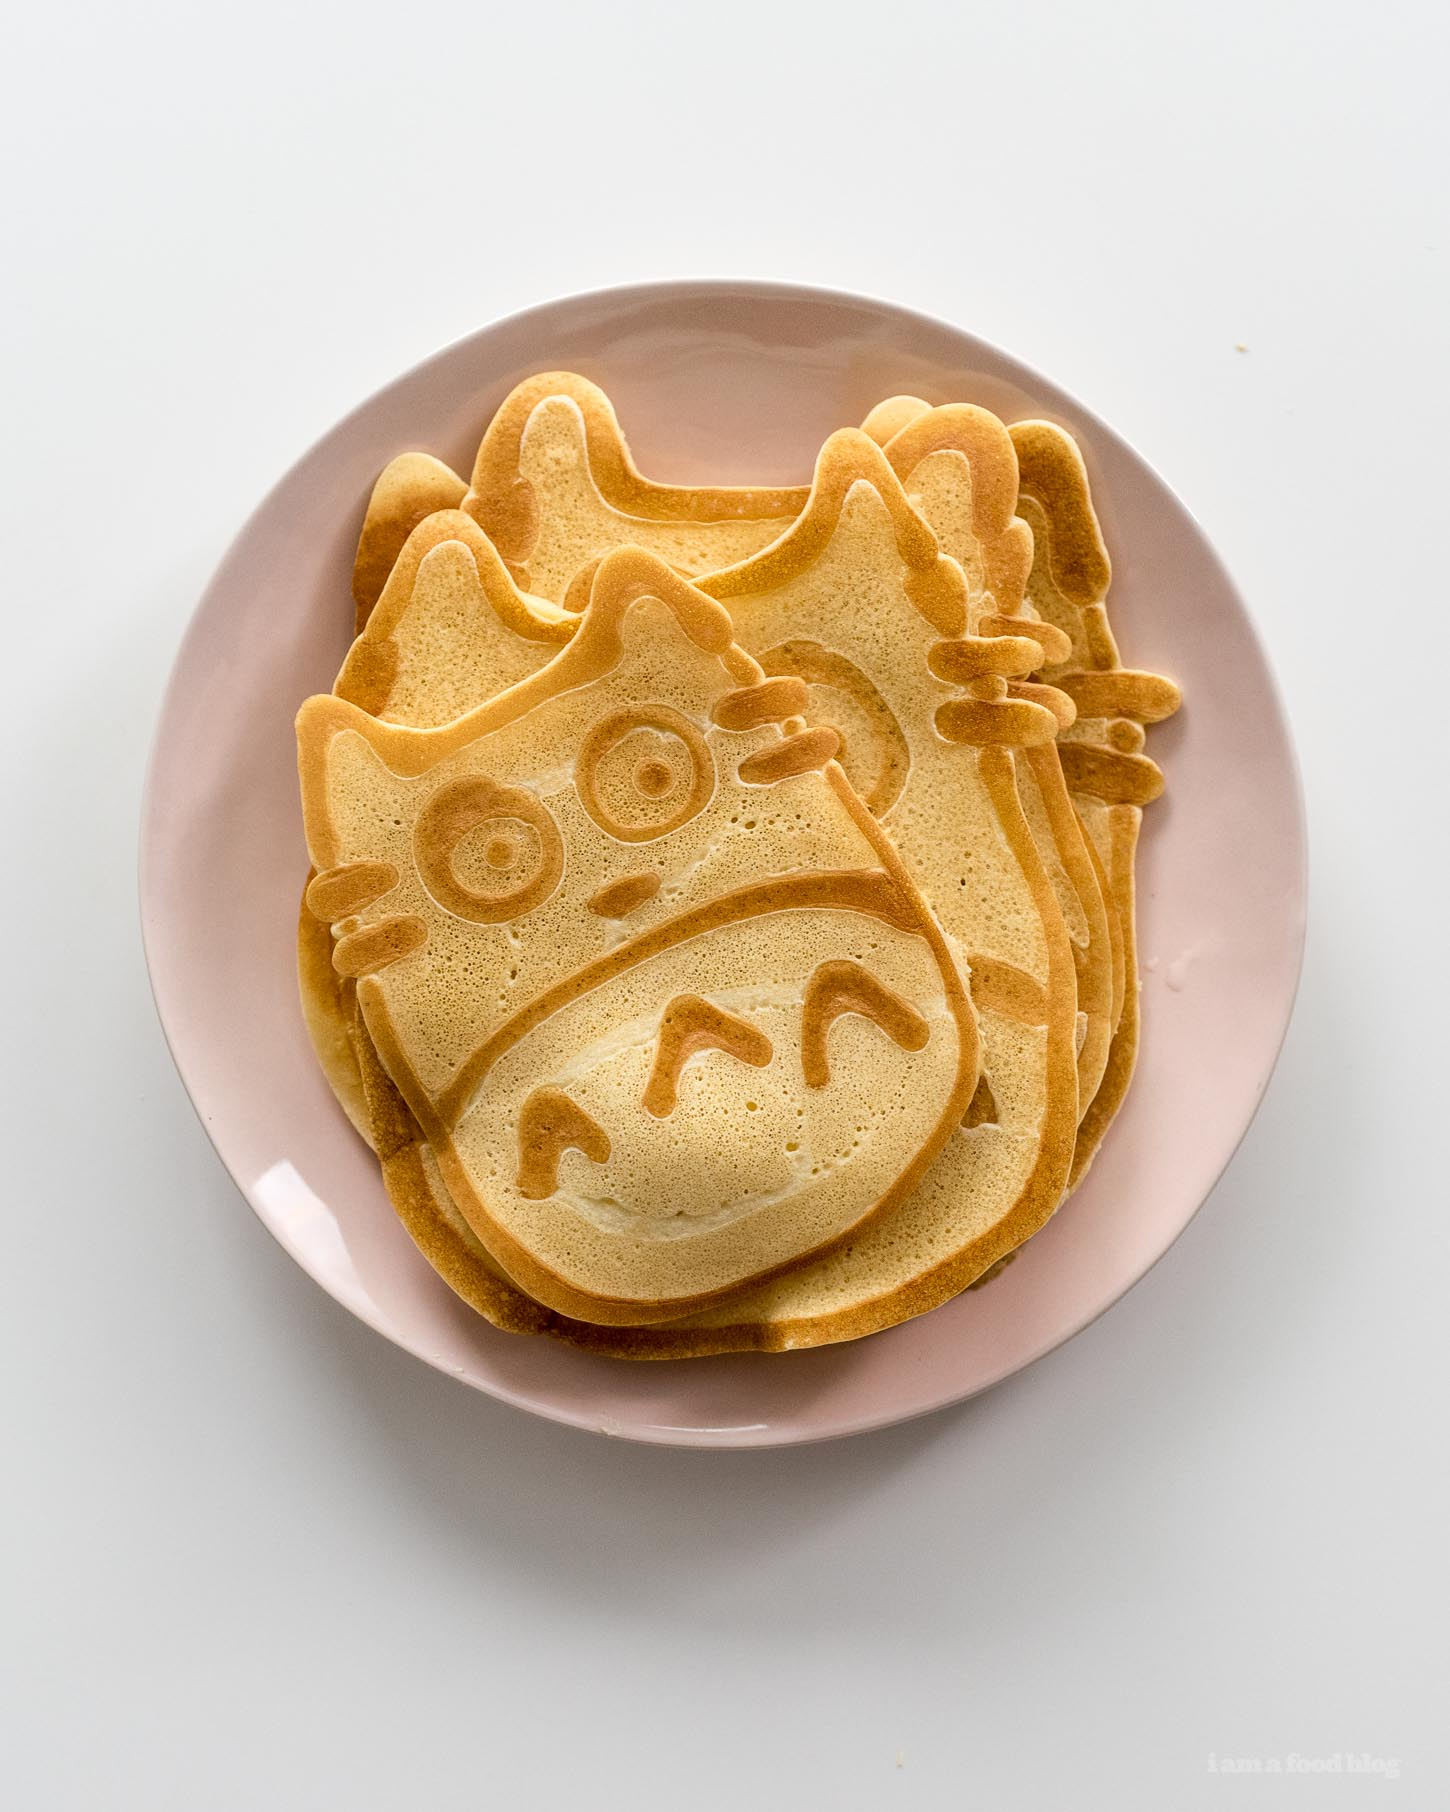 How to make totoro pancakes | www.iamafoodblog.com